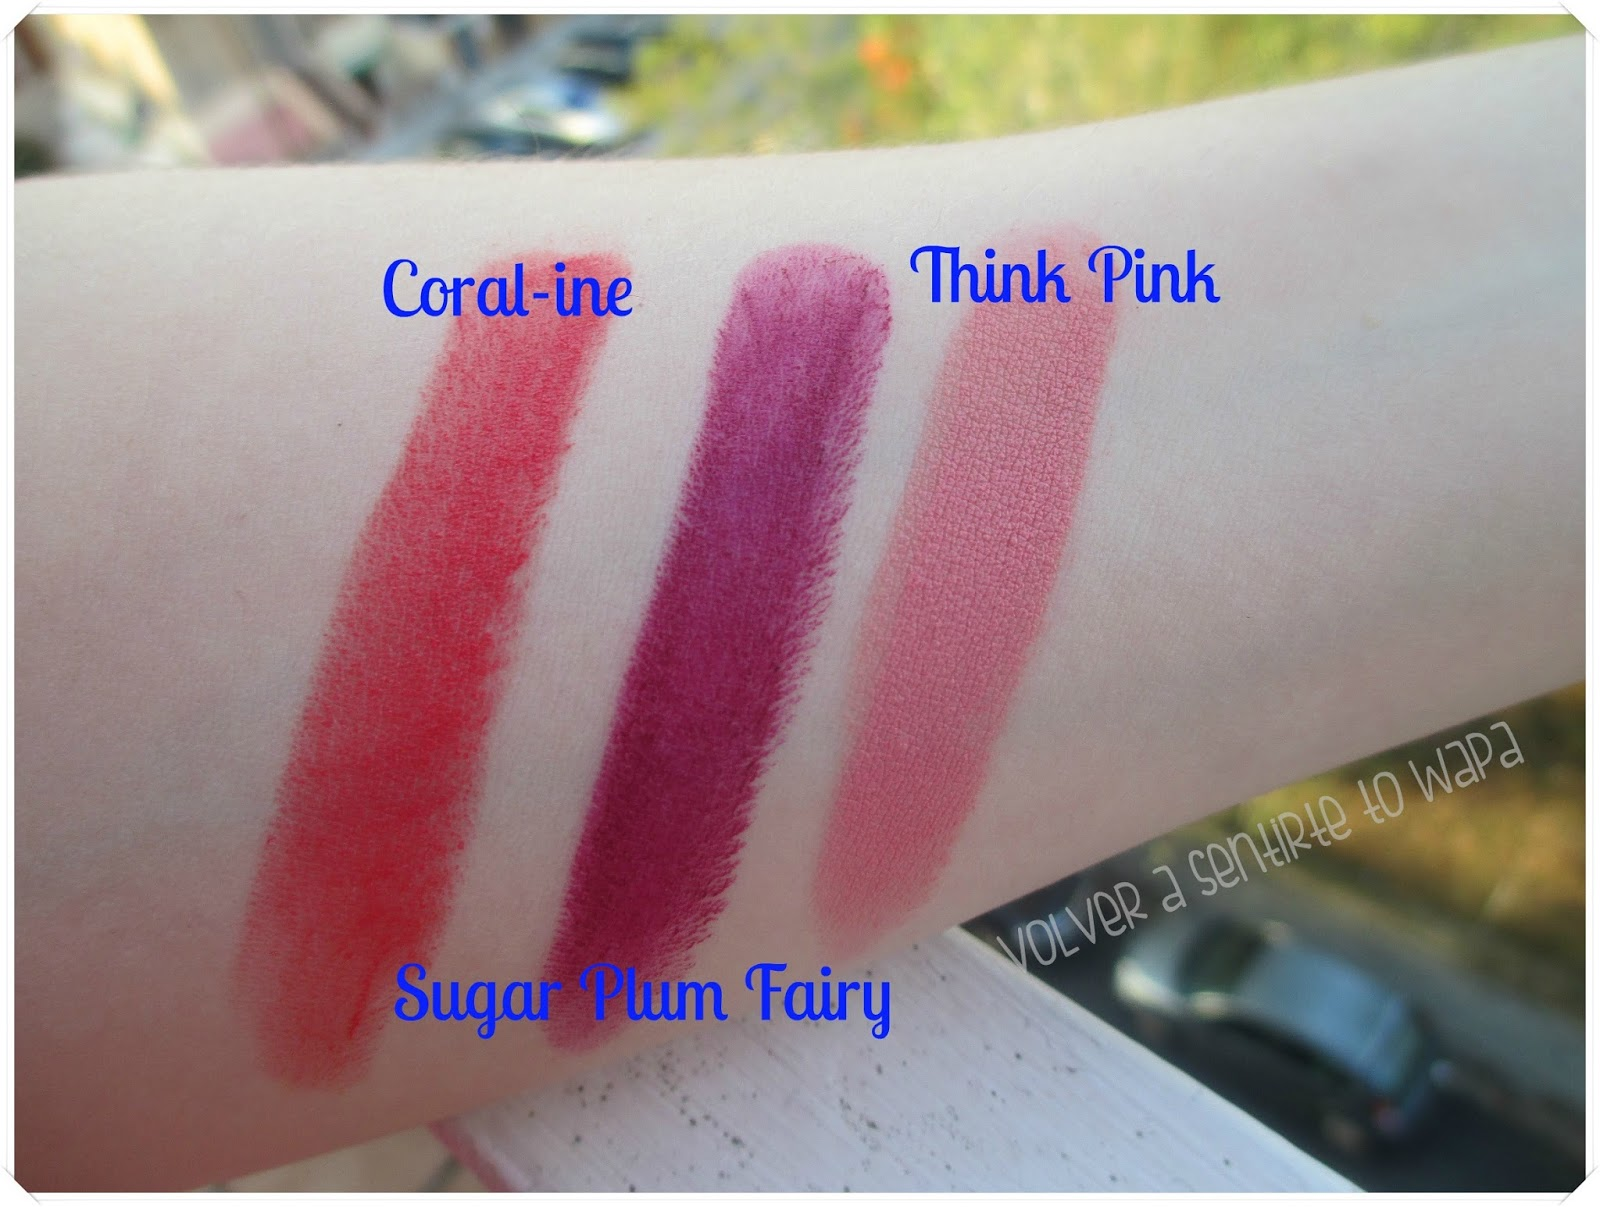 Labiales MegaLast Lip Color de Wet n' Wild - Swatches